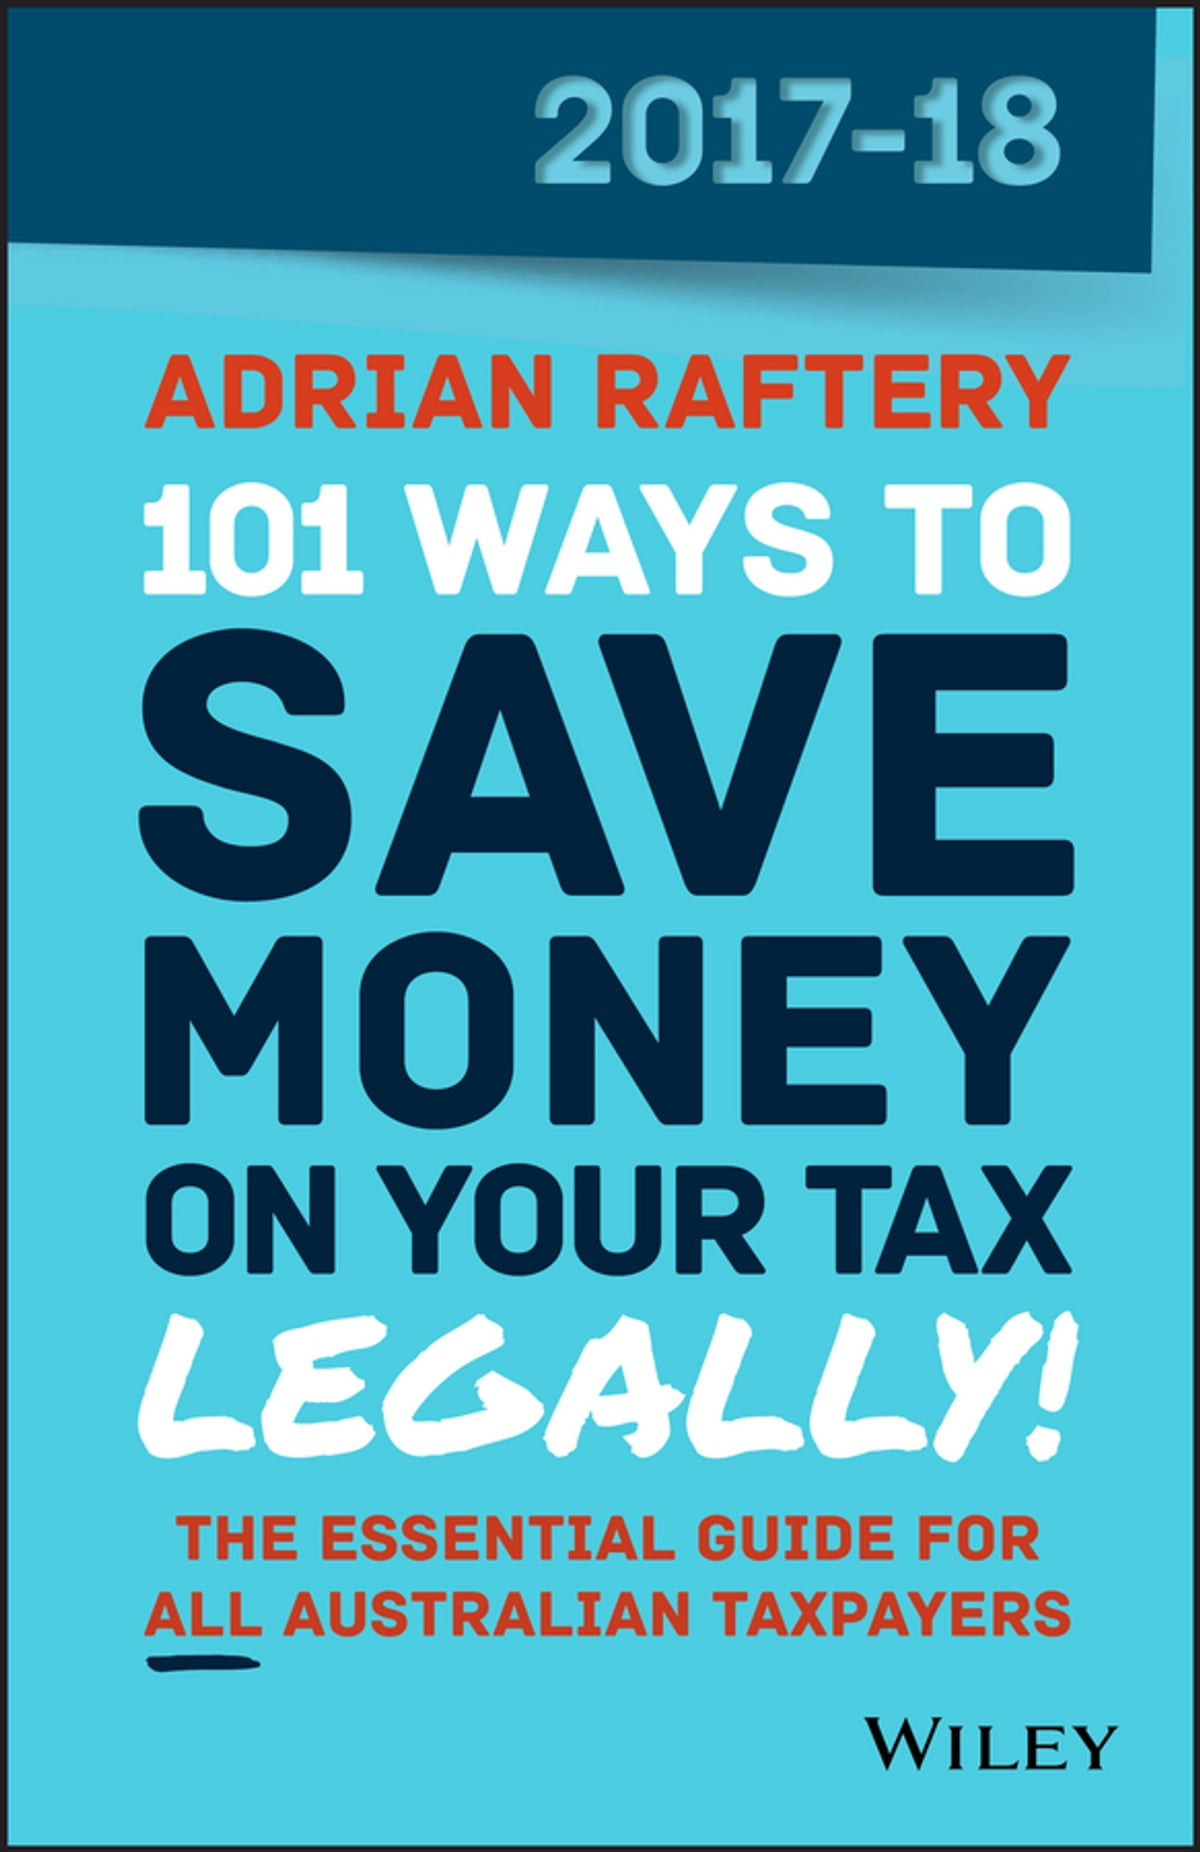 101 Ways to Save Money on Your Tax - Legally! 2017-2018 eBook by Adrian  Raftery - 9780730344957 | Rakuten Kobo